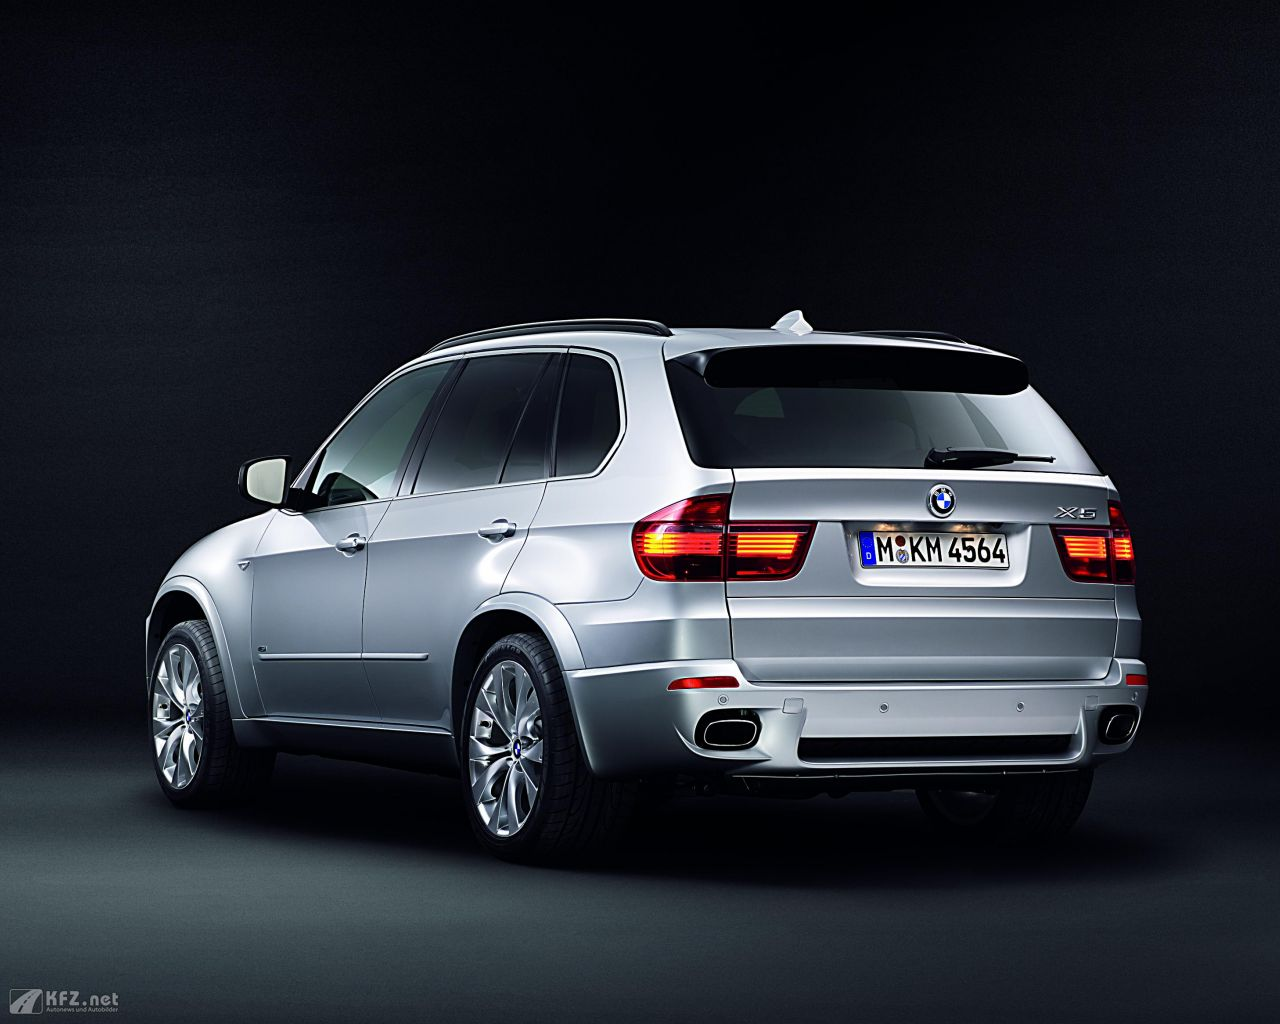 bmw x5 bilder ein sav sports activity vehicle aus m nchen. Black Bedroom Furniture Sets. Home Design Ideas